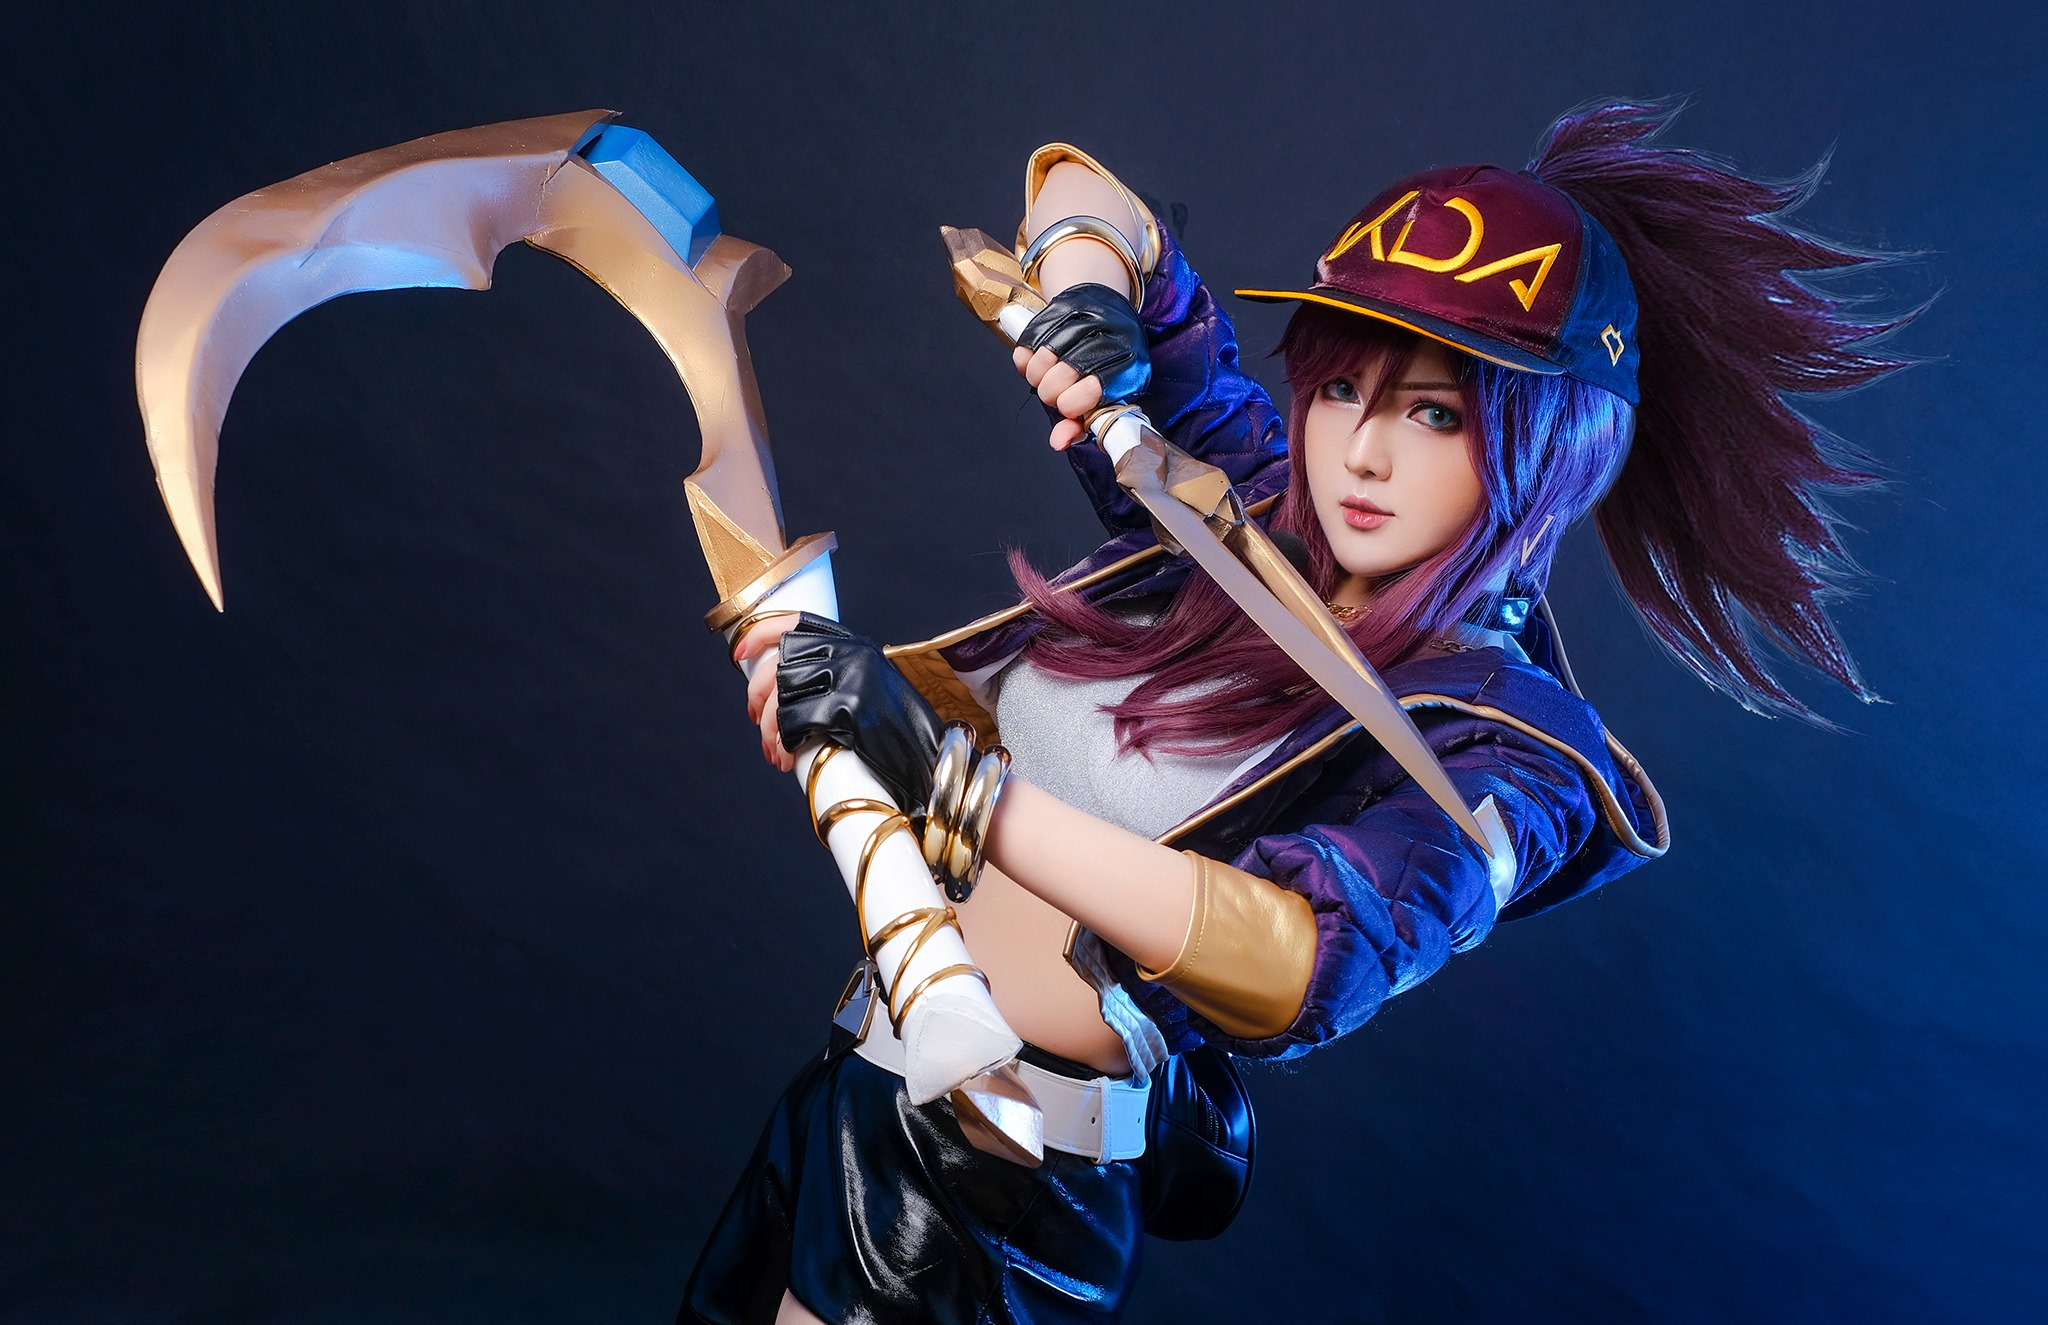 Nu Coser Viet hoa than Squid Game, lo mat that gay sot-Hinh-8